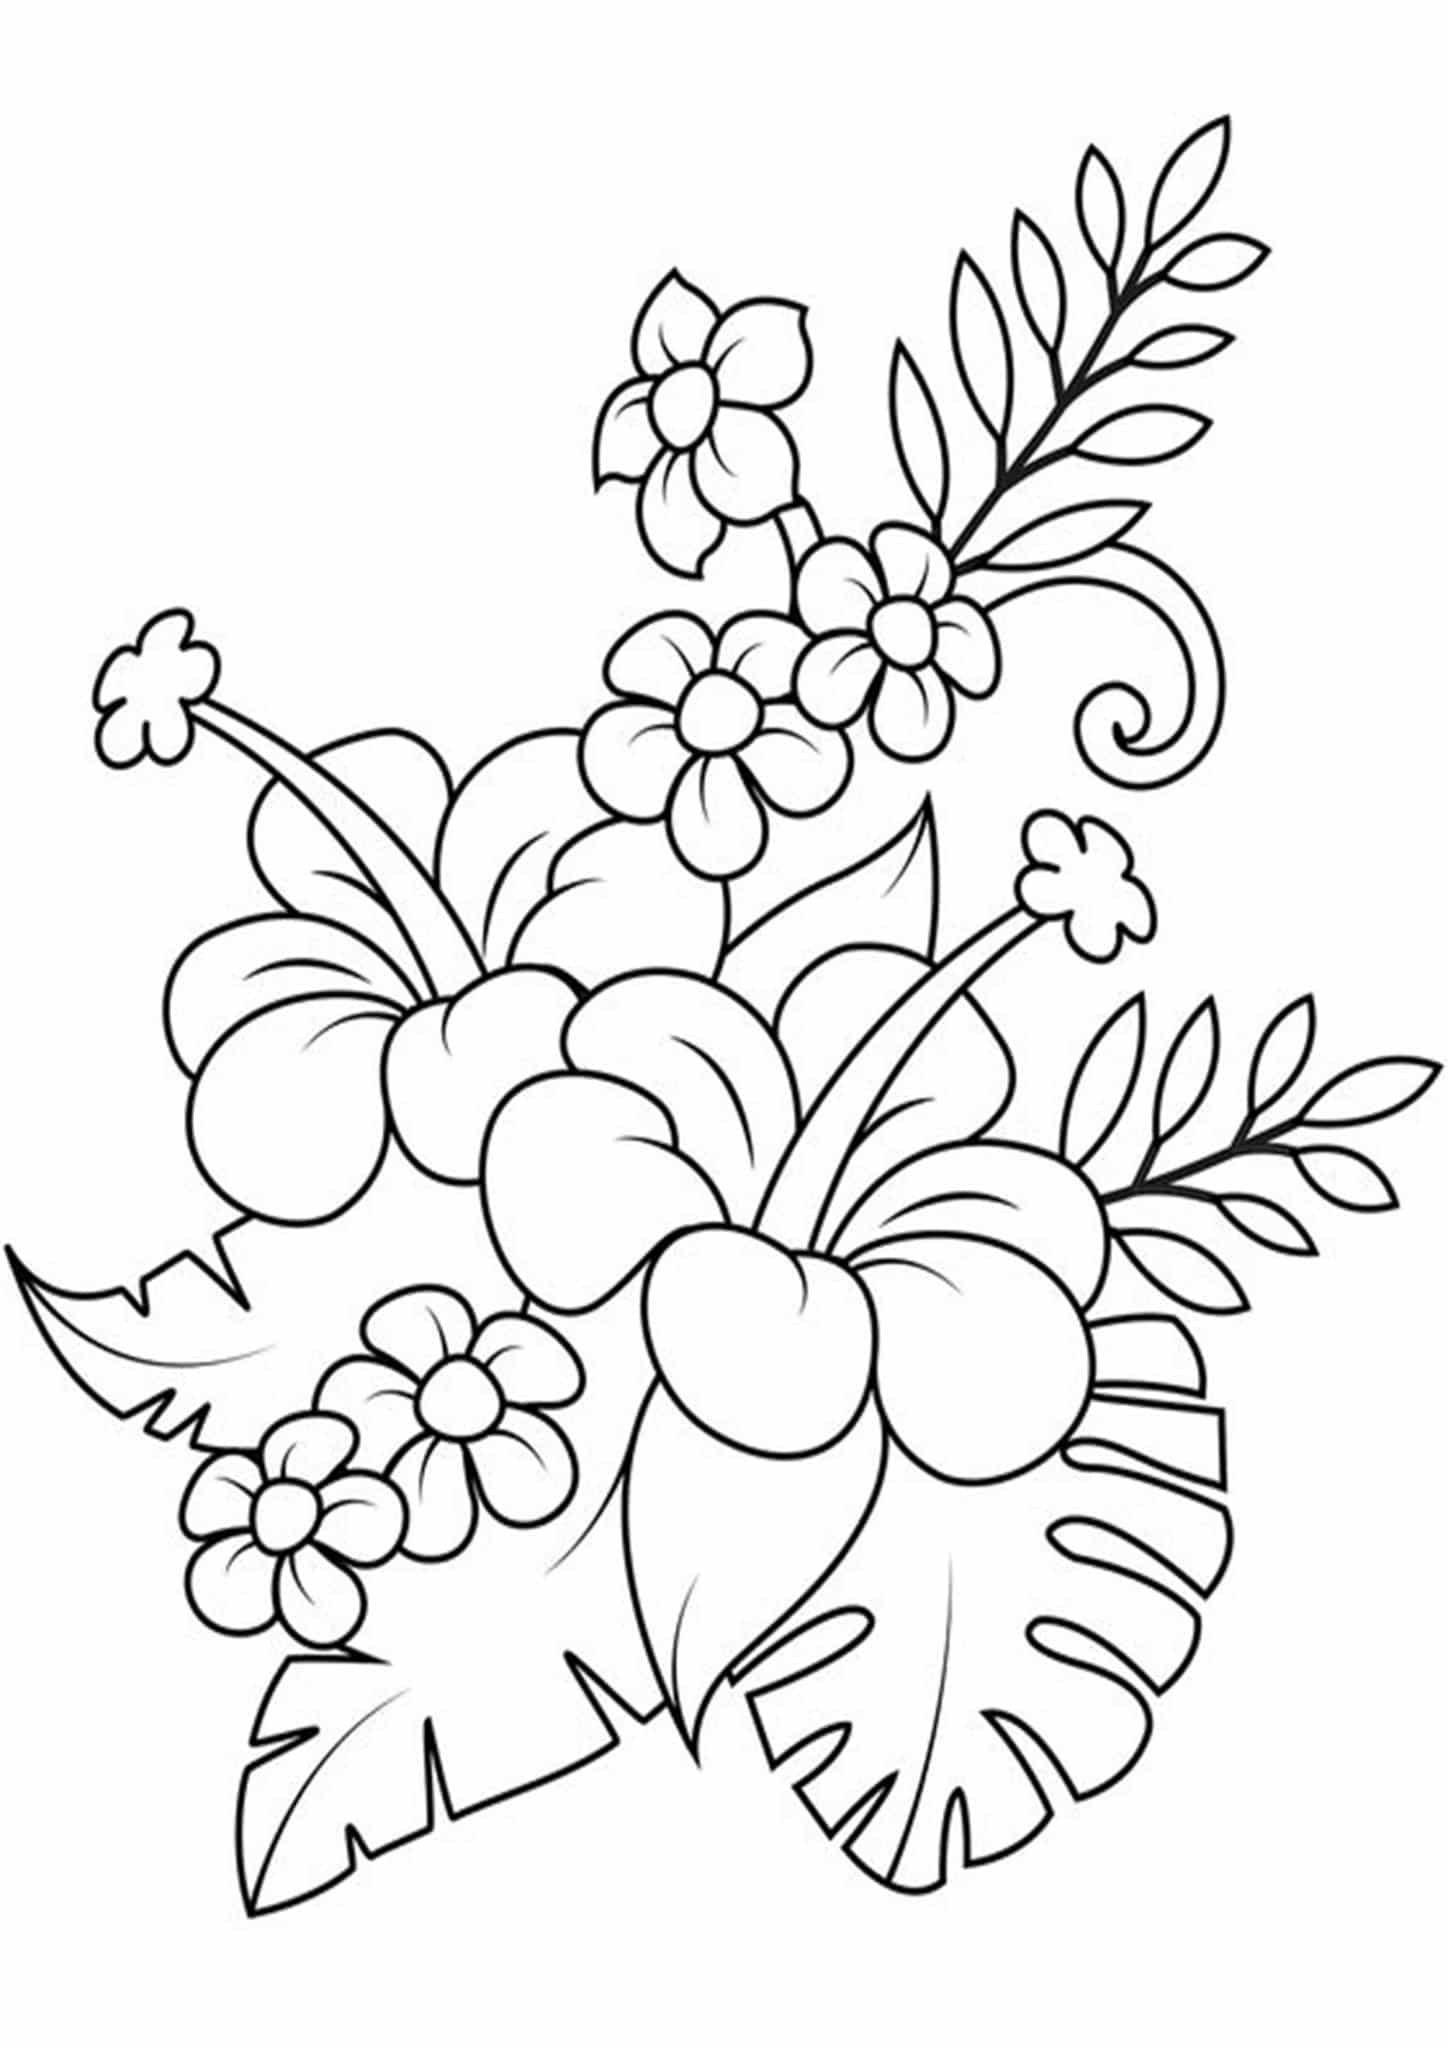 flower coloring sheet 10 flower coloring sheets for girls and boys all esl sheet coloring flower